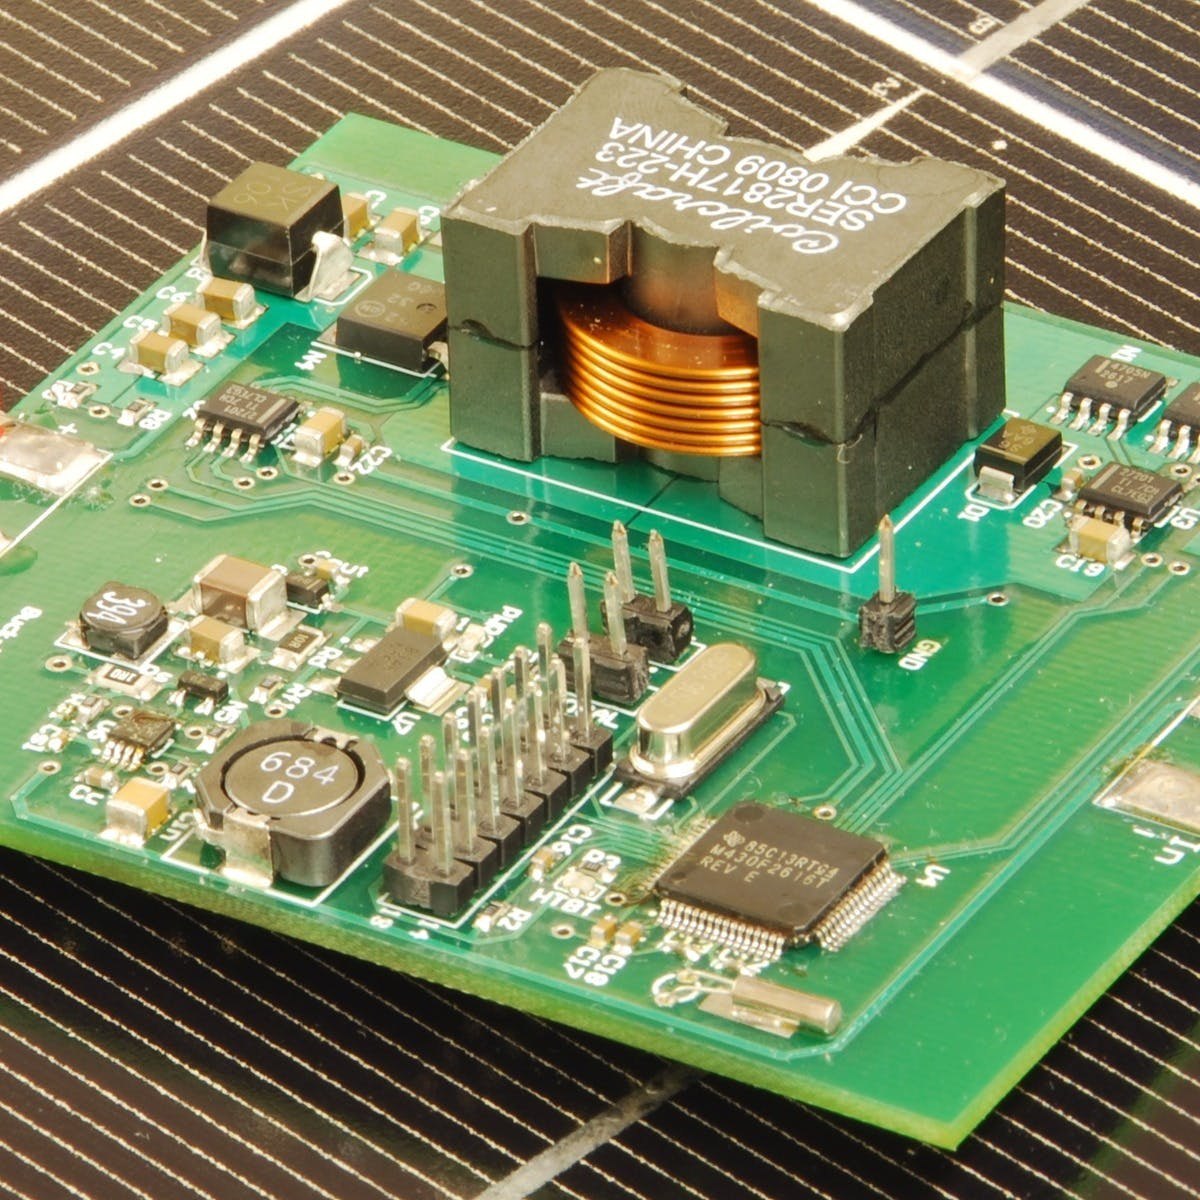 Capstone Design Project in Power Electronics